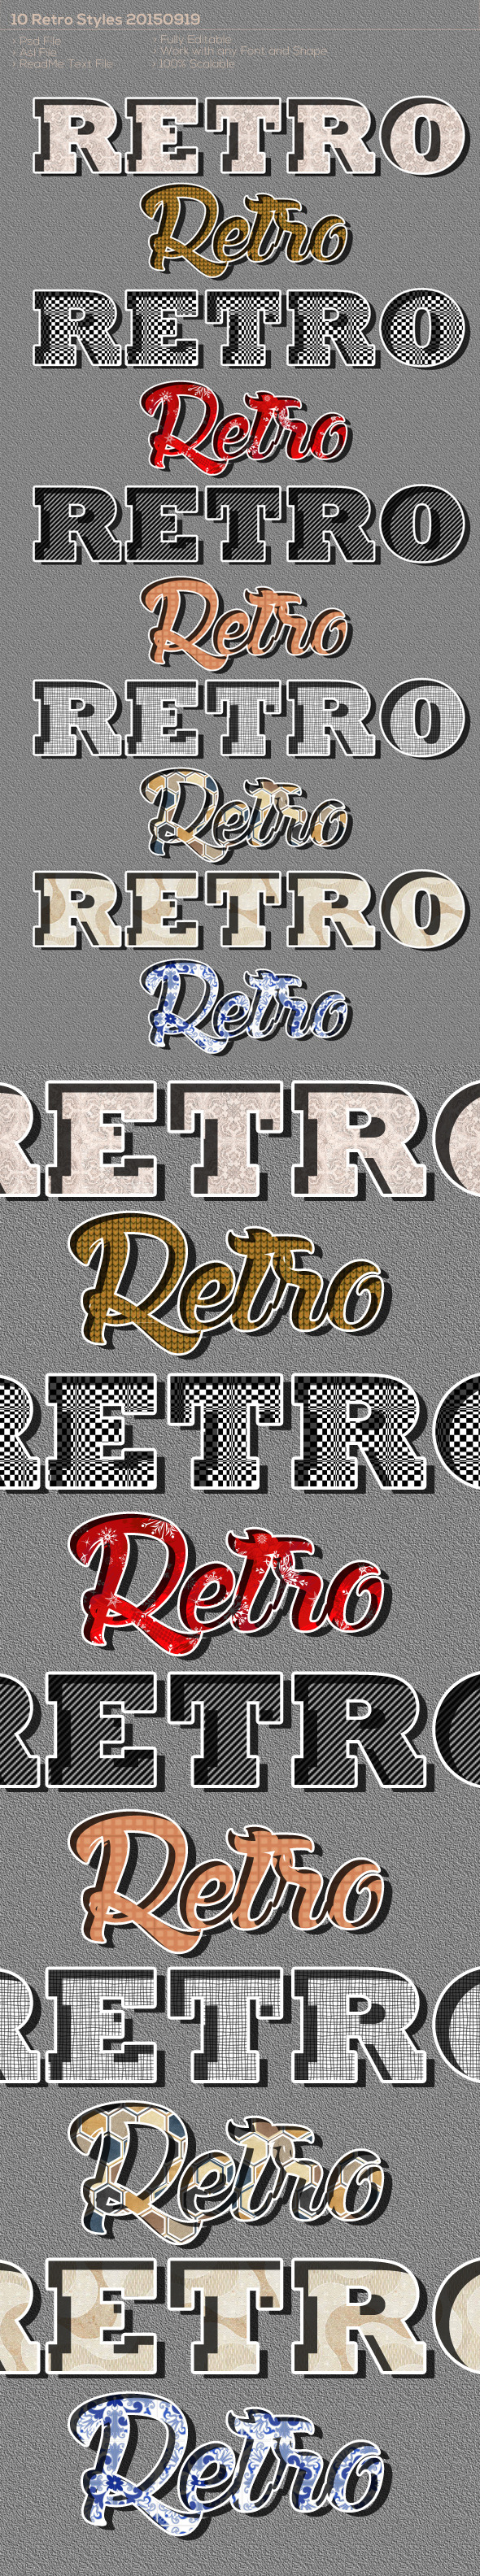 10 Retro Styles 20150919 - Text Effects Styles